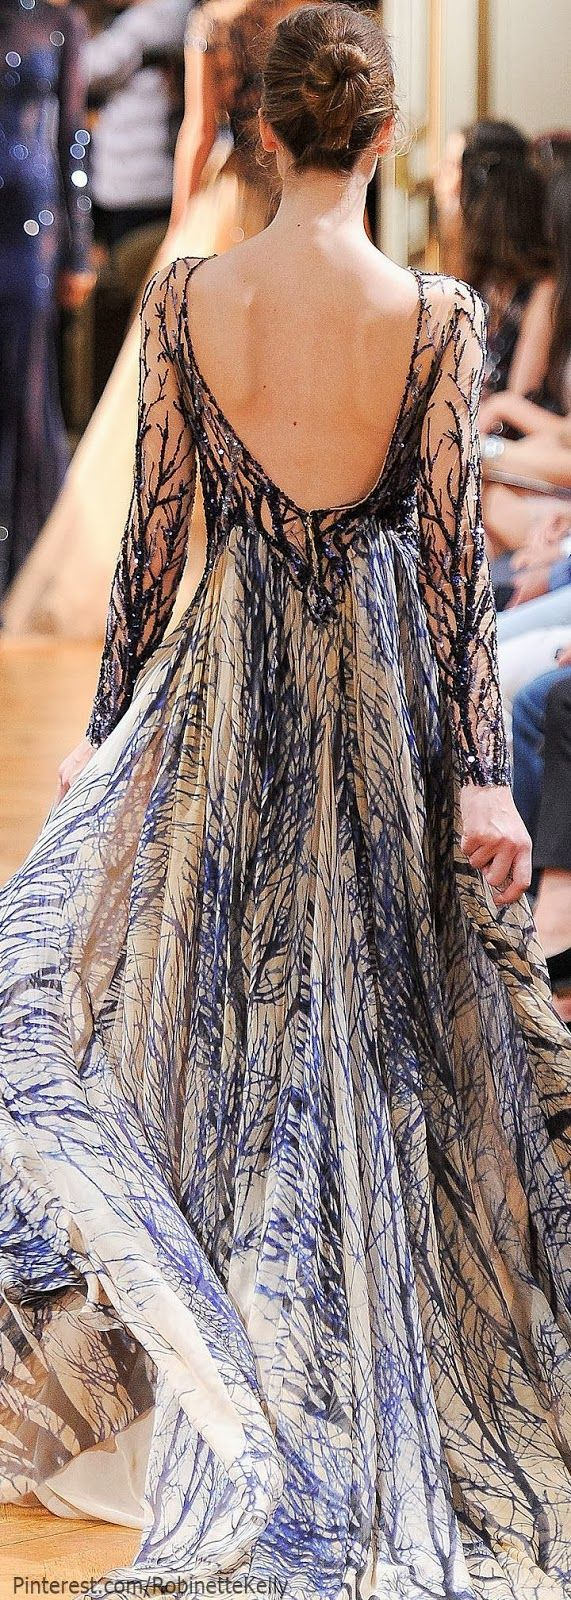 best images about dress on pinterest christian dior marchesa